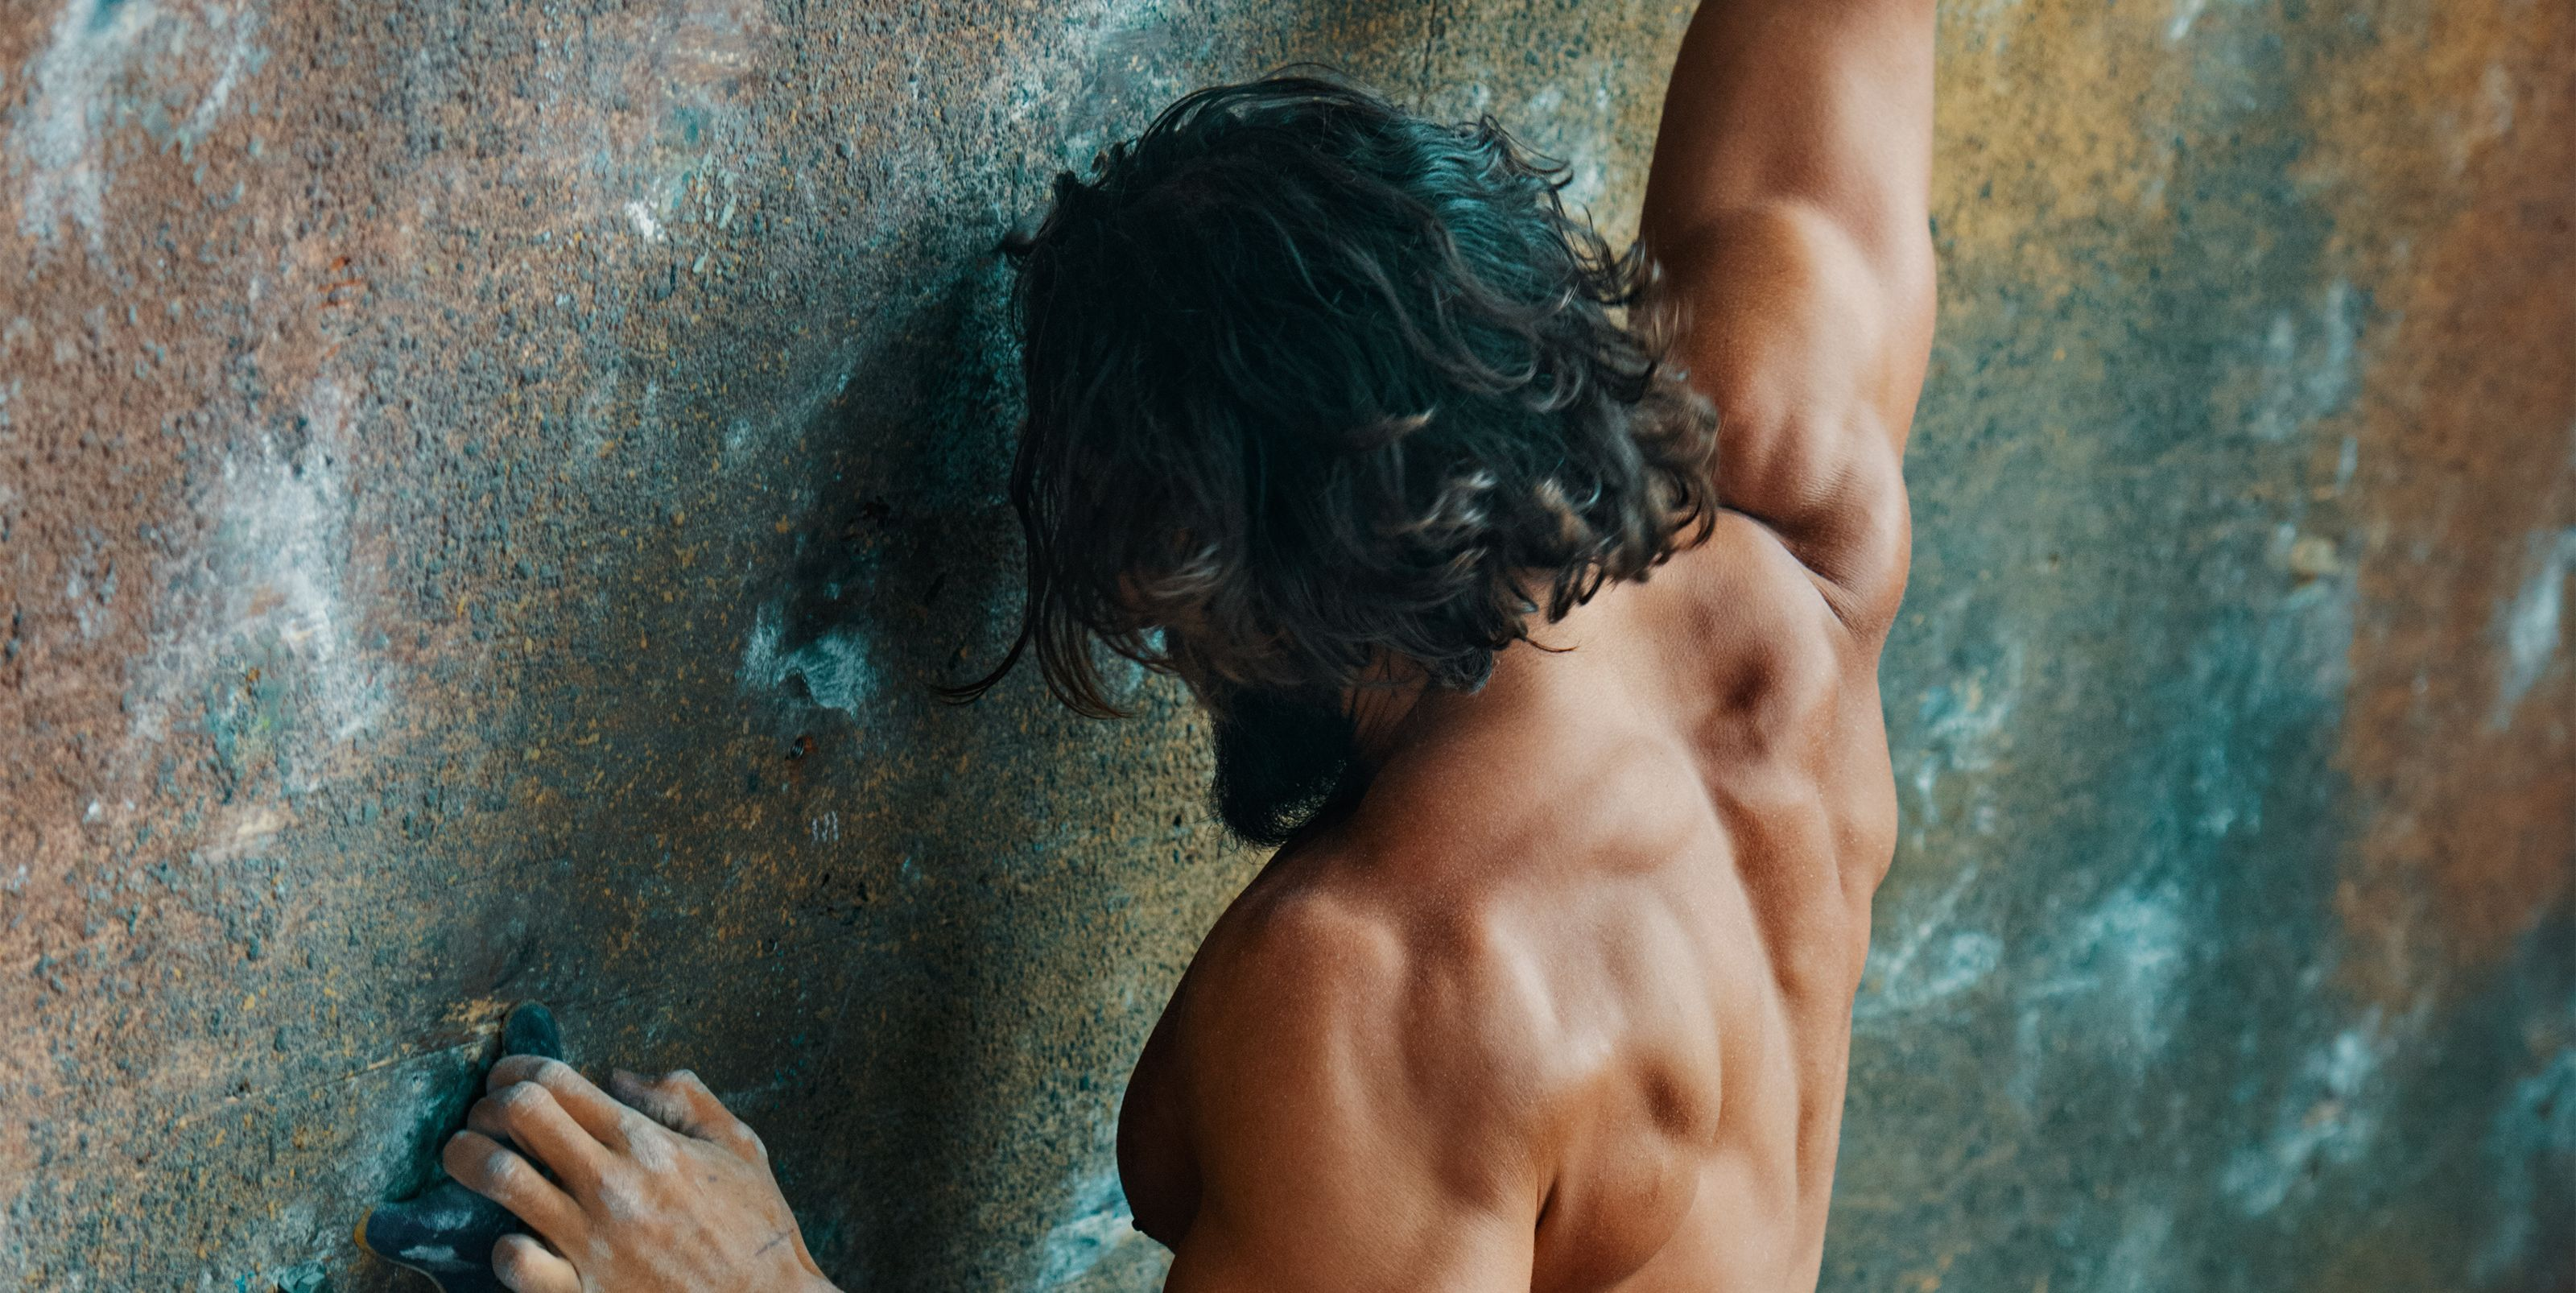 Jason Momoa, muscle, workout, networth, Game of Thrones